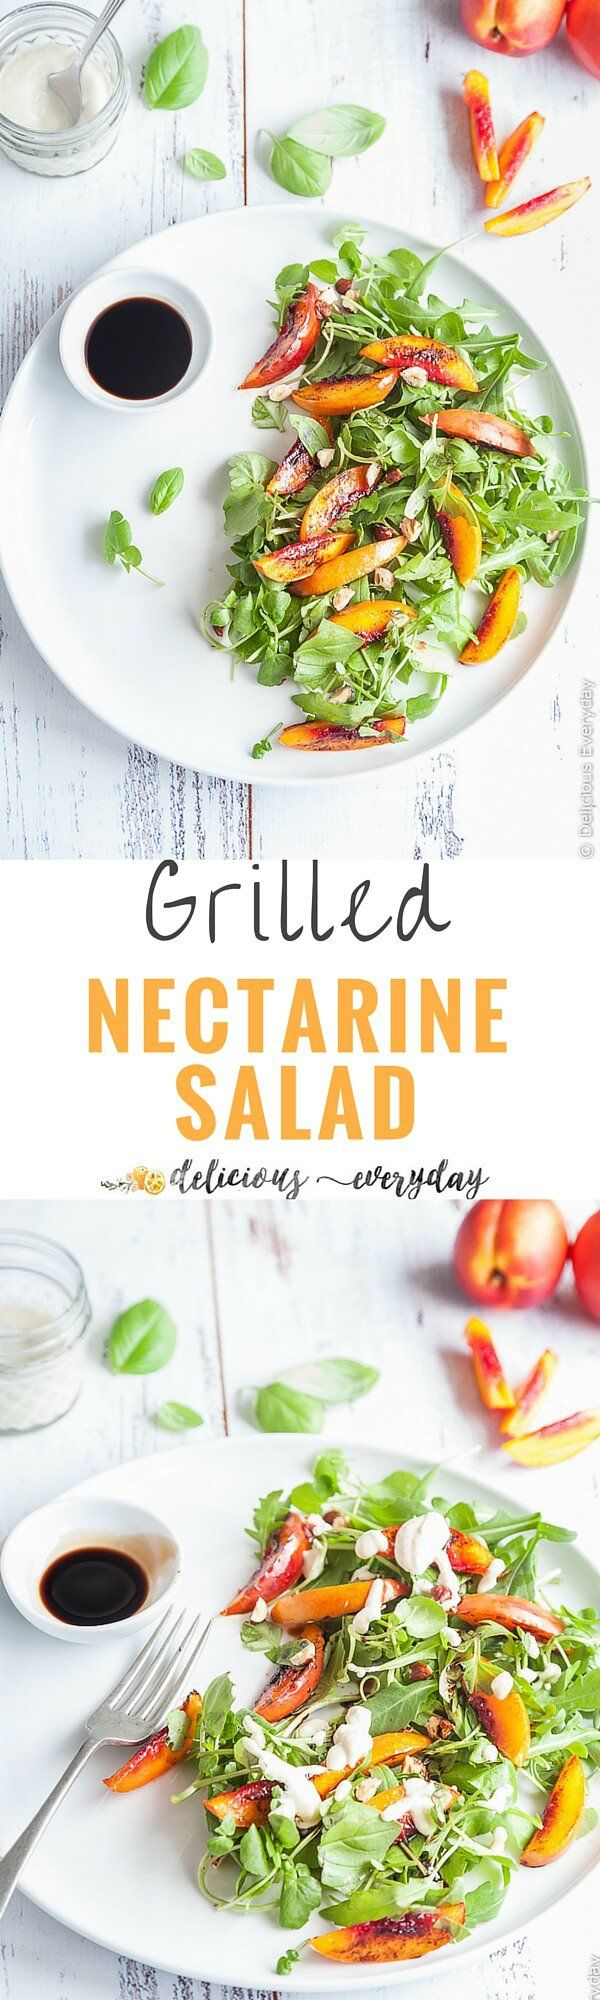 3272 best vegan dinner recipes images on pinterest vegan recipes vegan grilled nectarine salad a gorgeously simple salad with the sweetness of forumfinder Choice Image